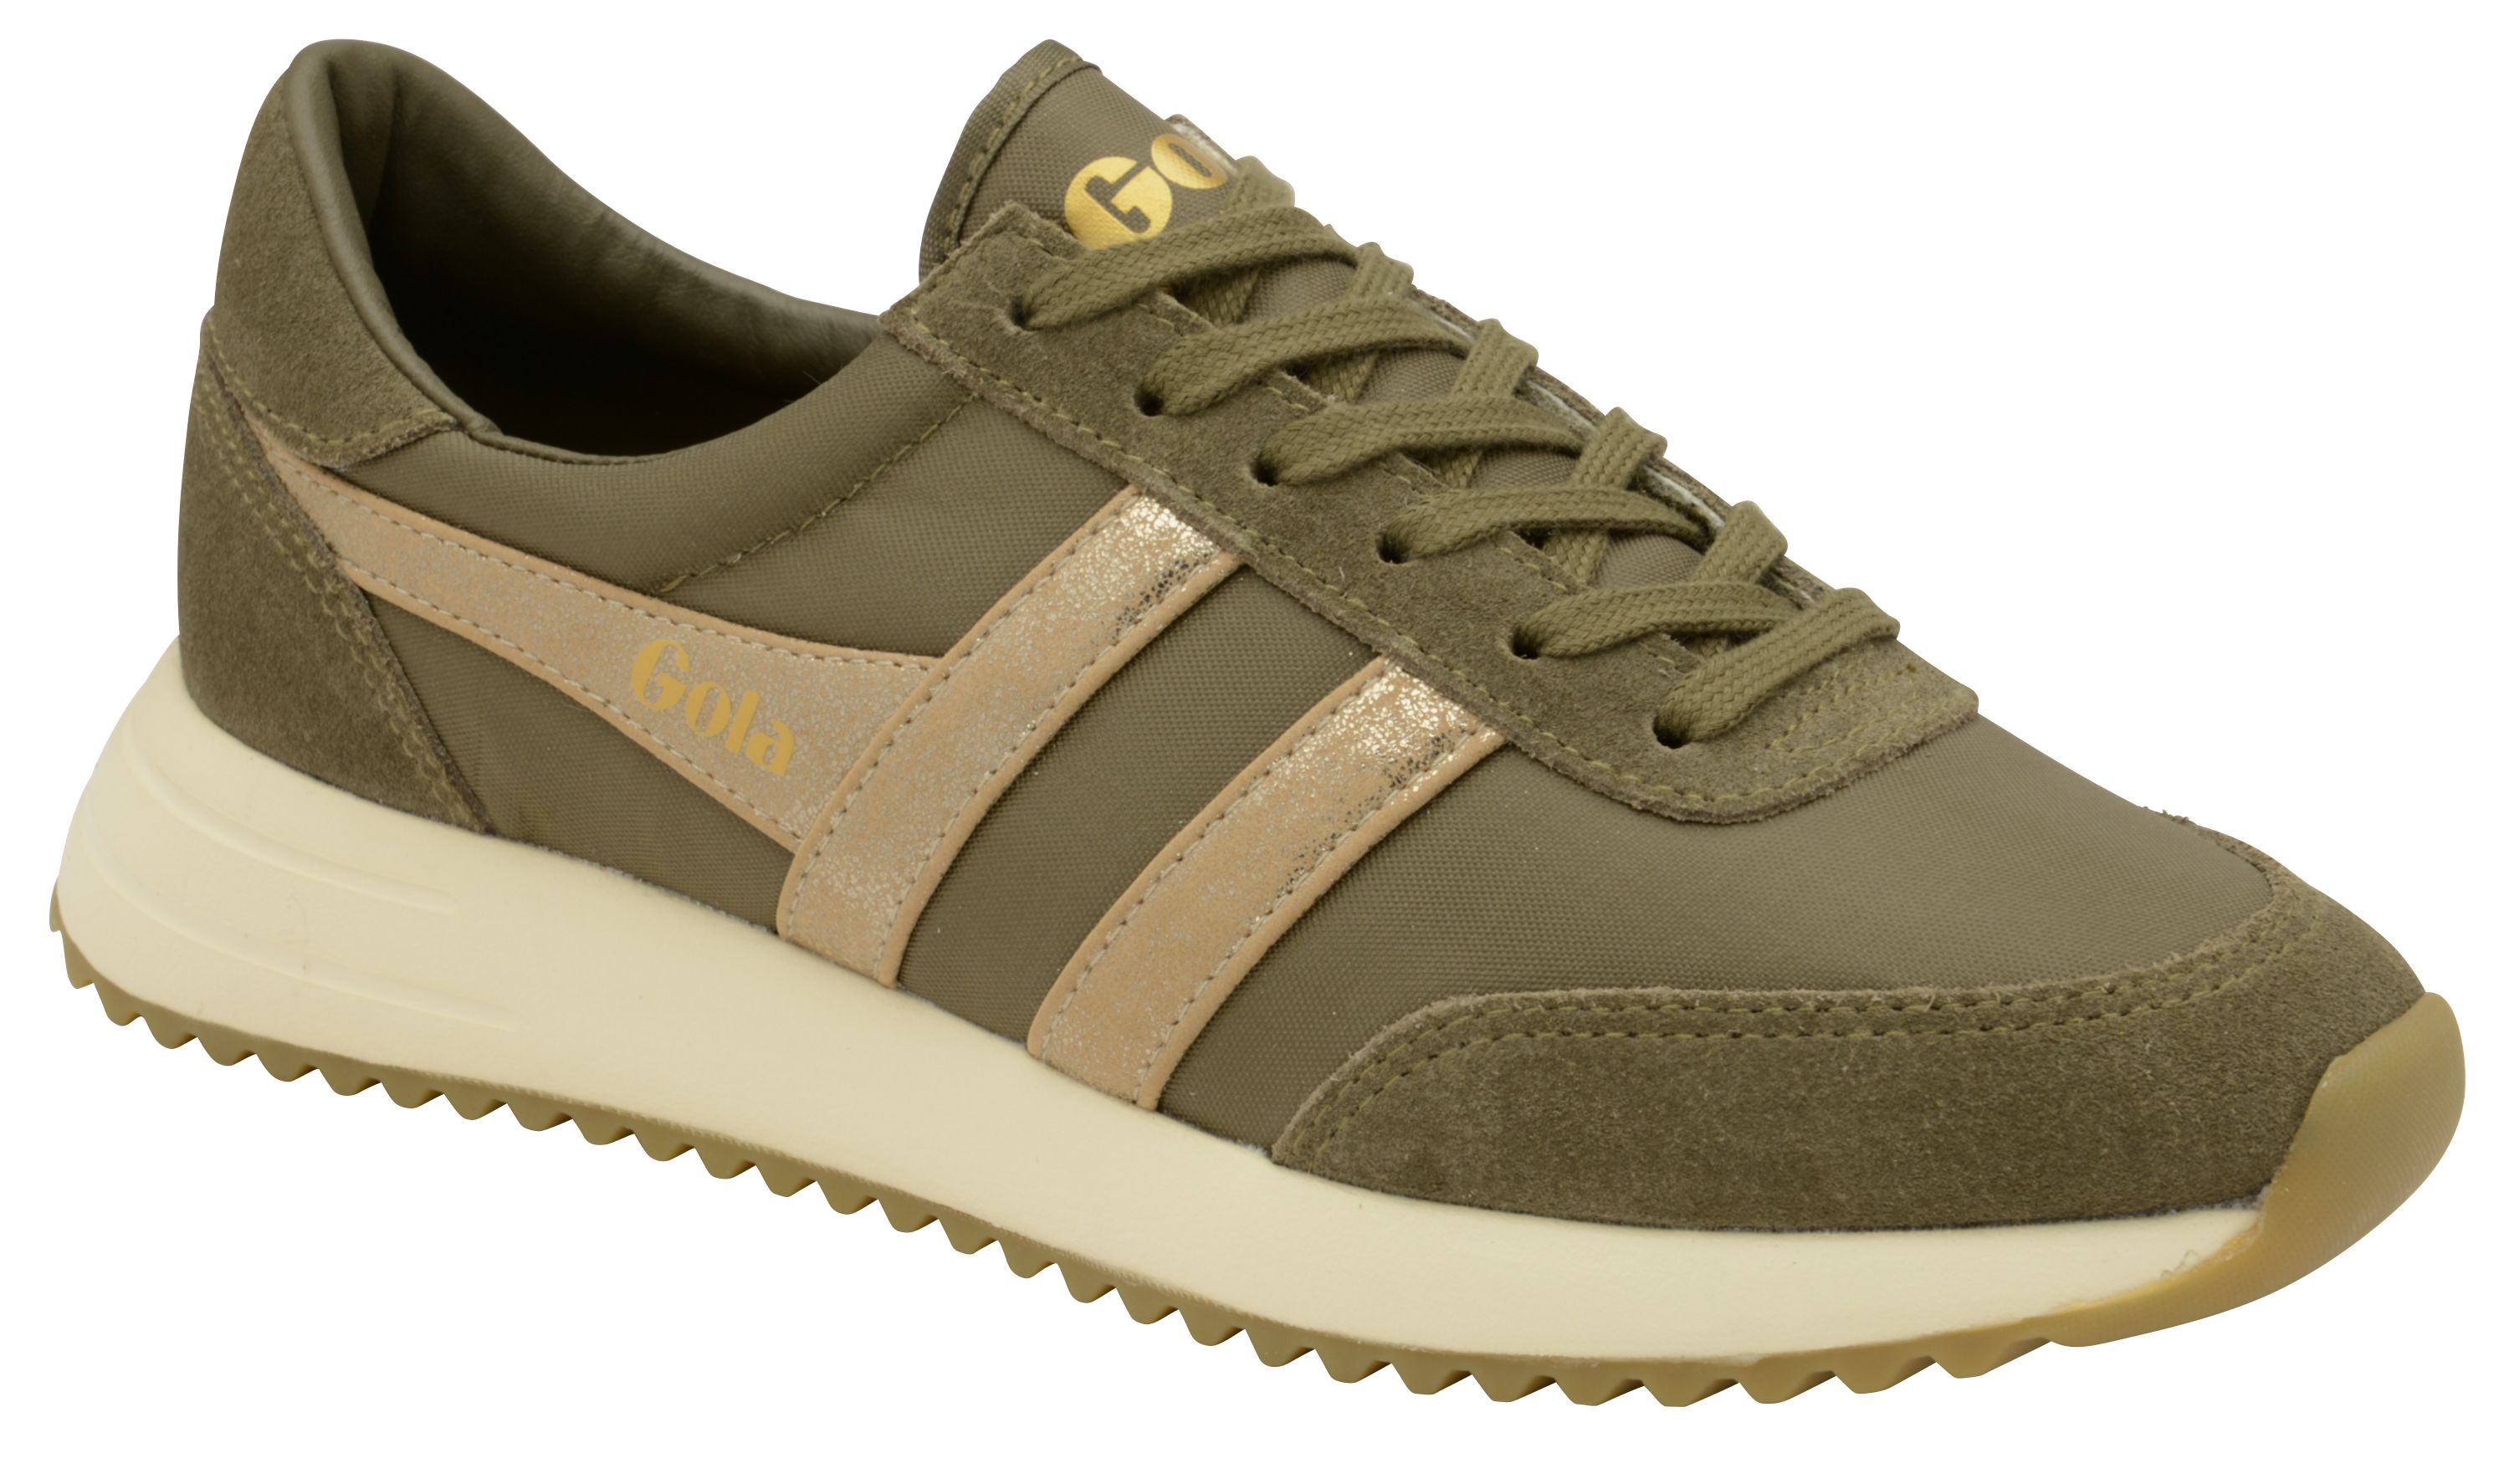 Gola Montreal Mirror Lace Up Trainers, Khaki